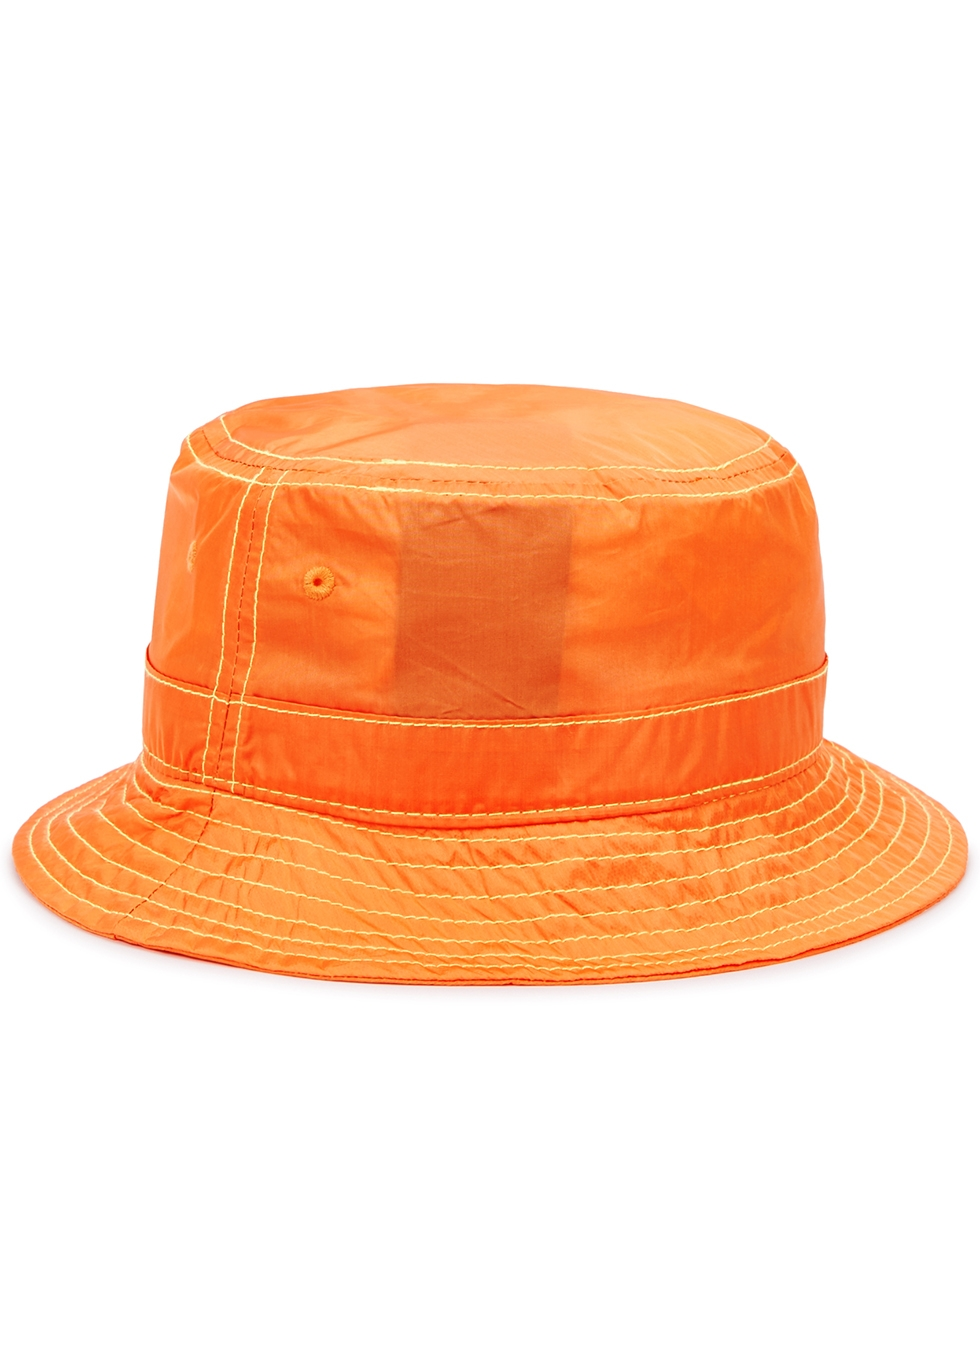 Orange shell bucket hat - Palm Angels